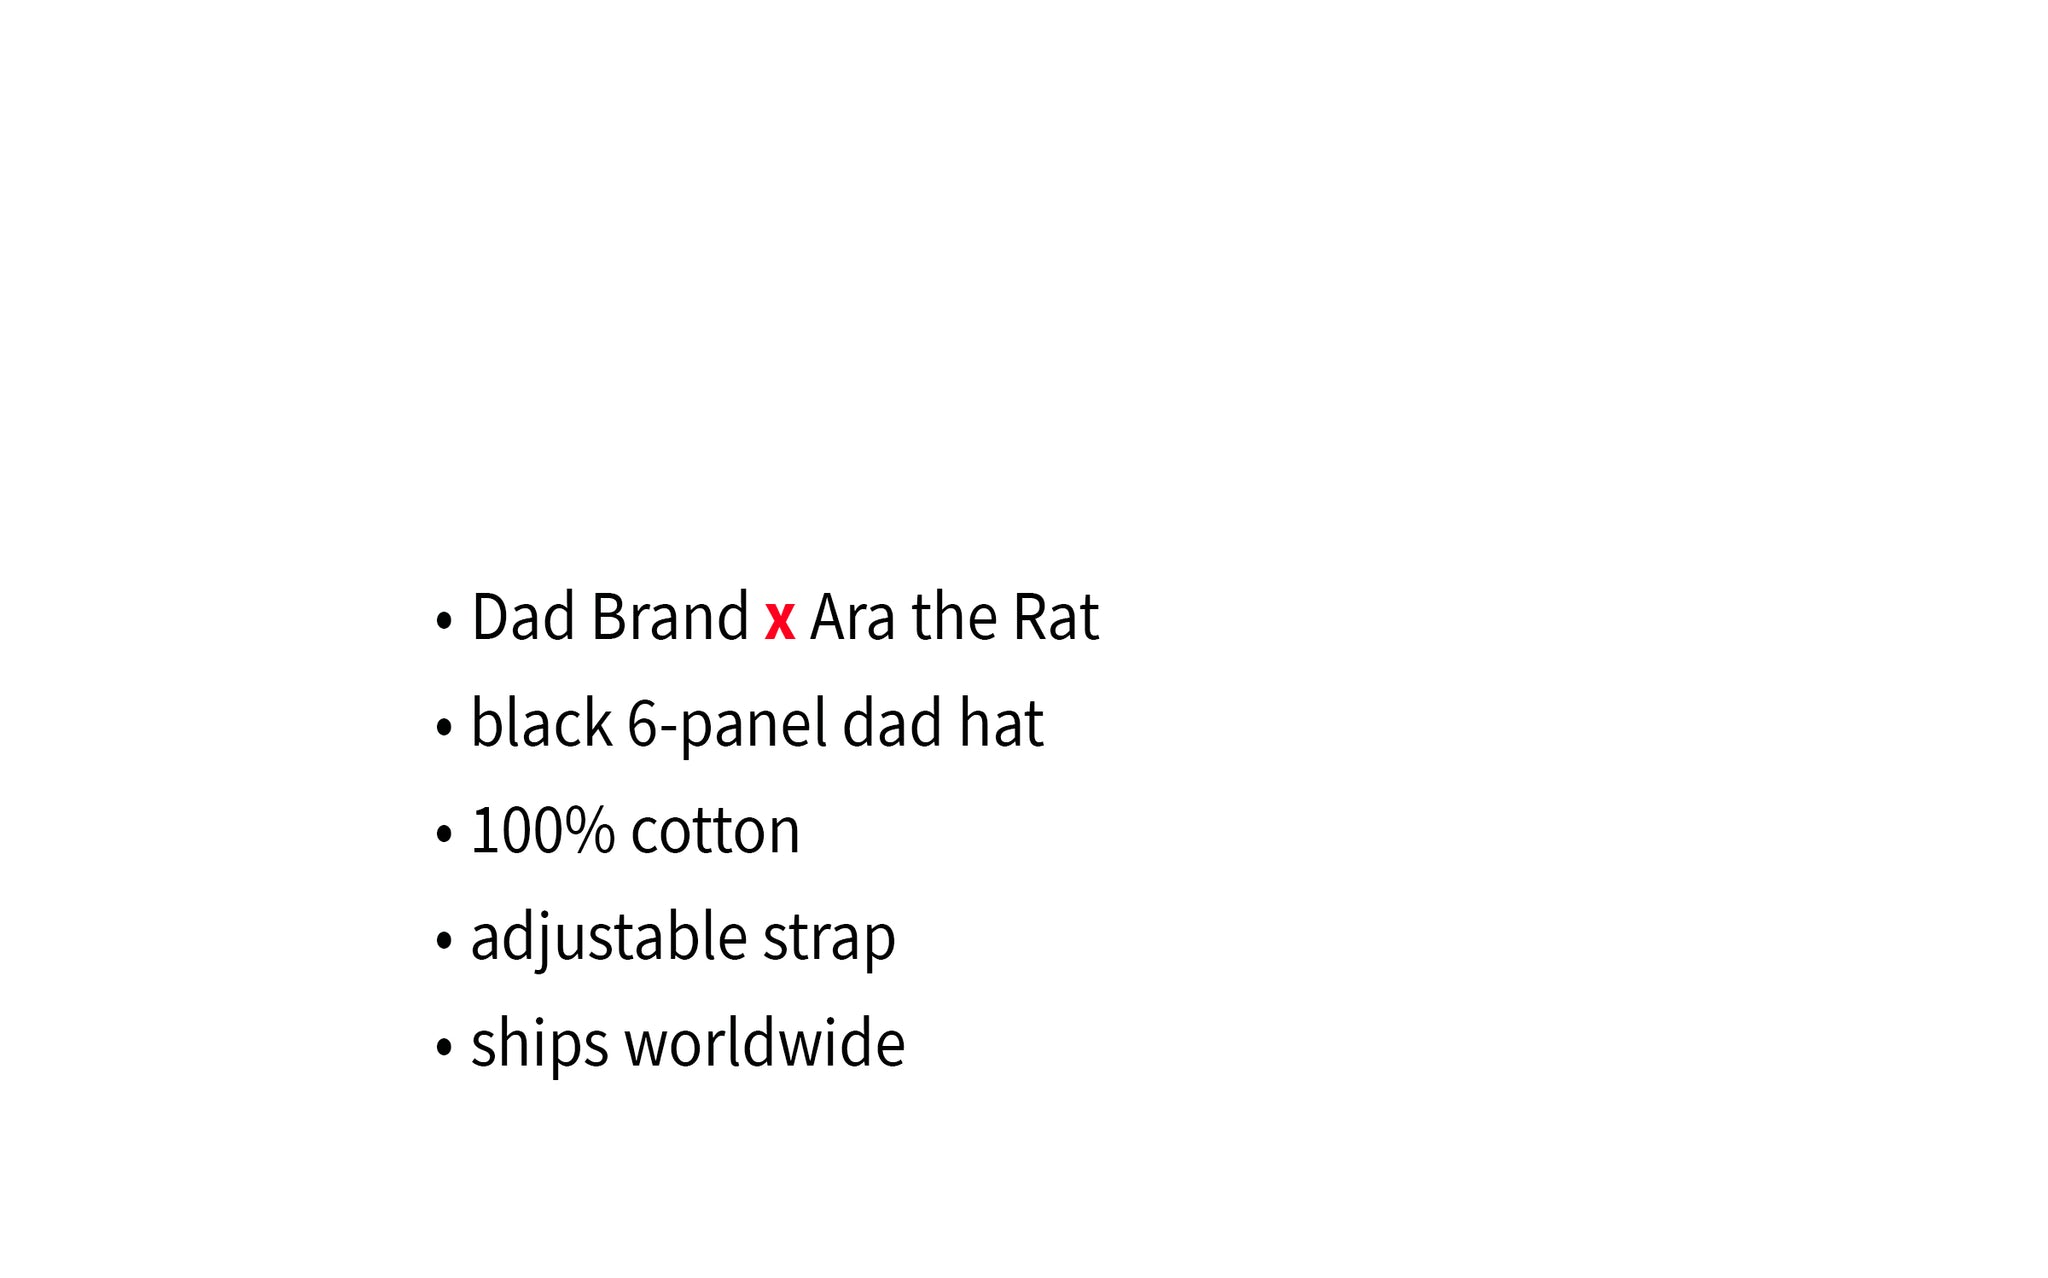 Dad Brand x Ara the Rat